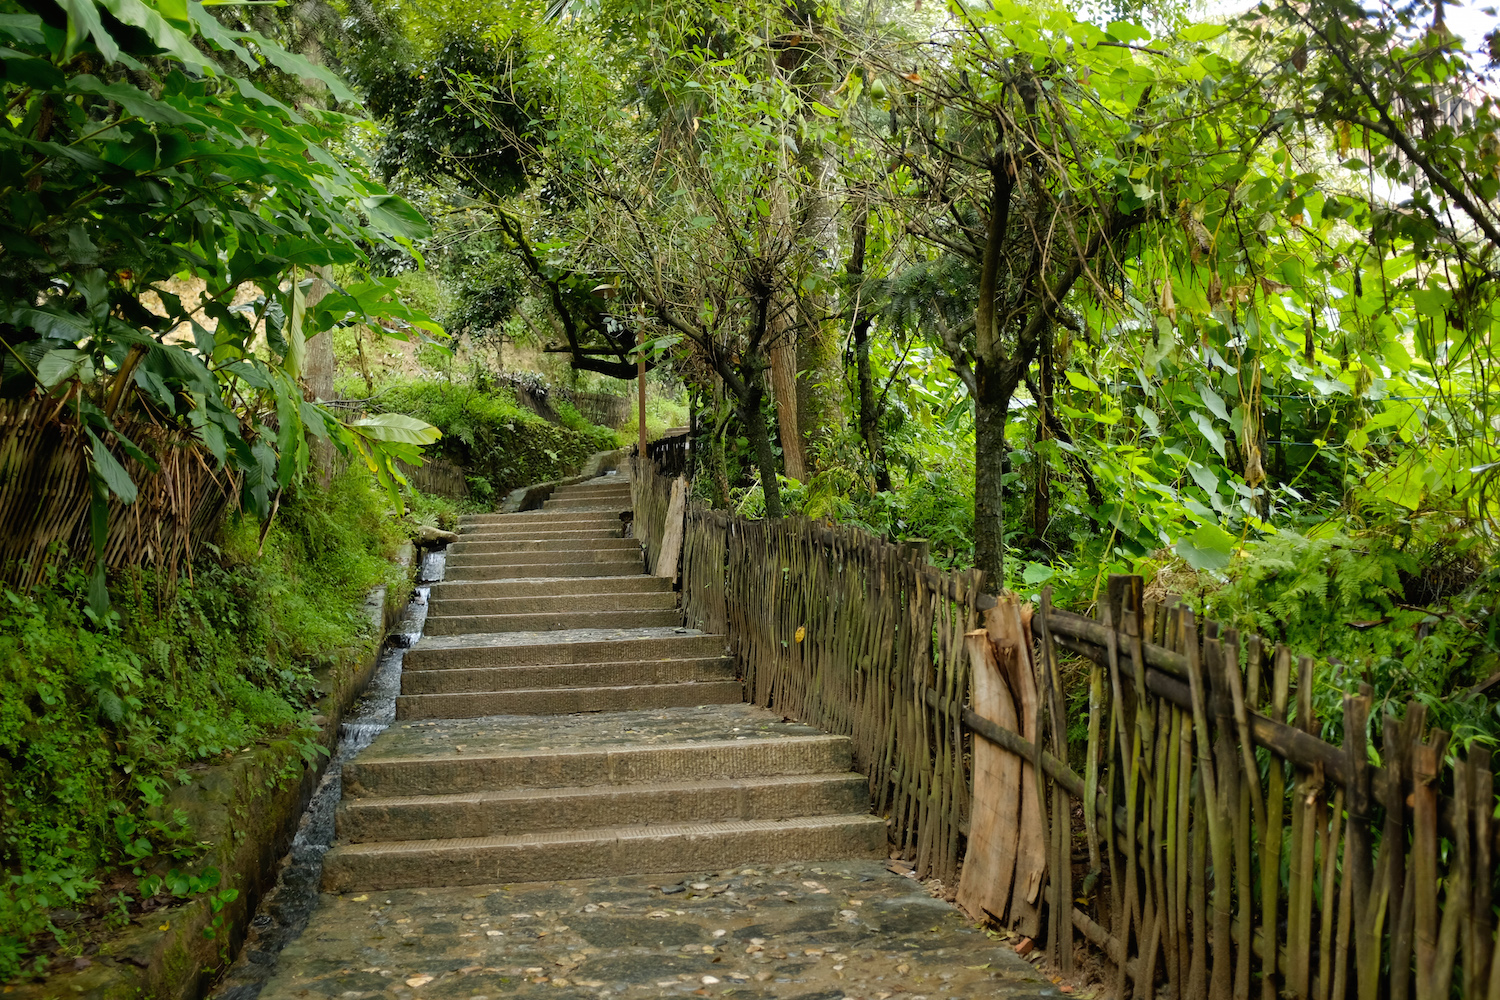 The walkway to Pugao Laozhai